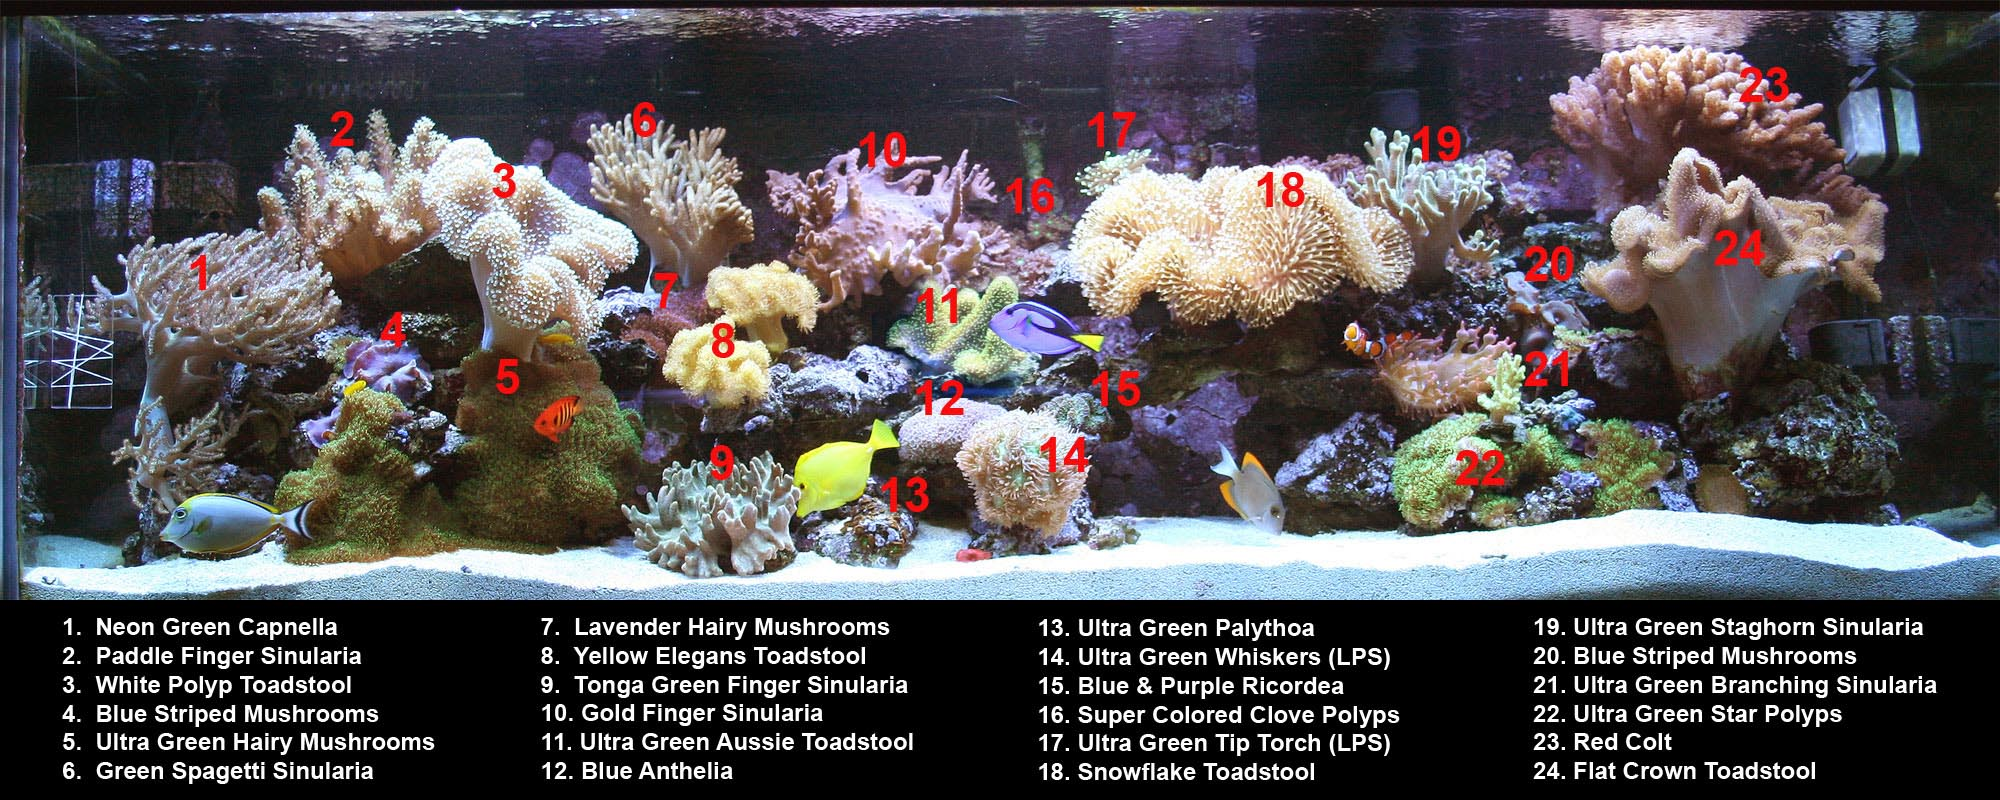 Aquarium Reef Coral Guide